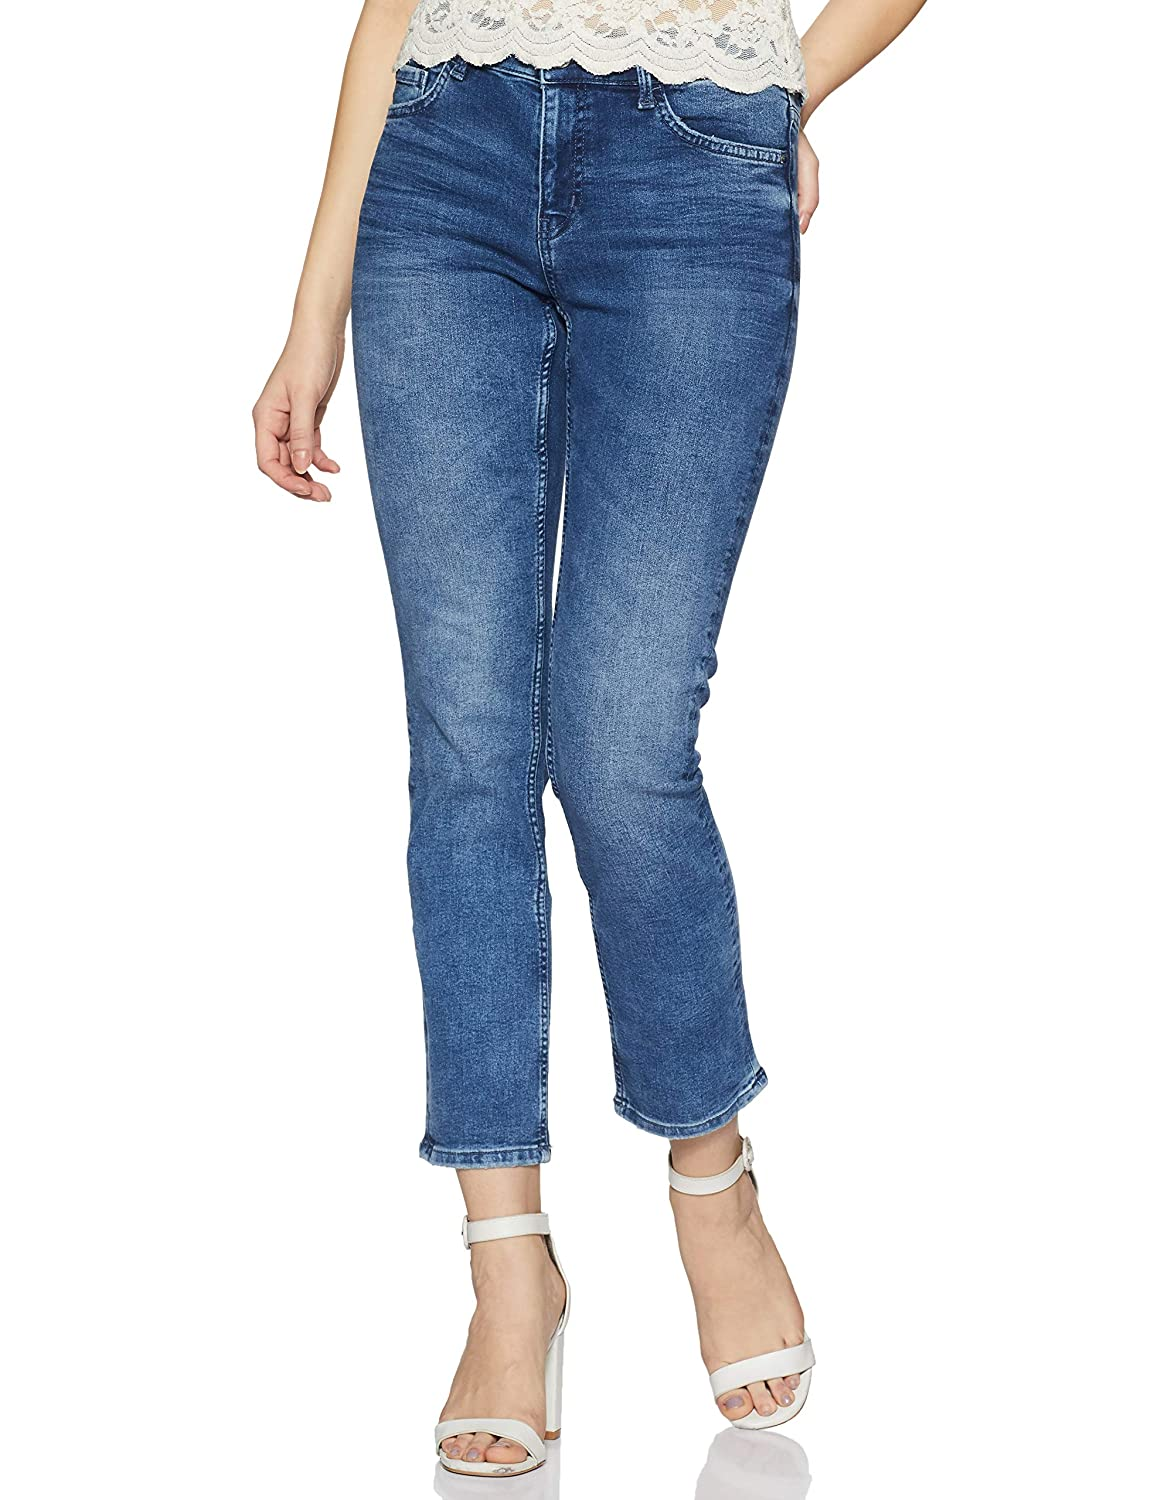 Marks & Spencer Women's Straight Fit Jeans